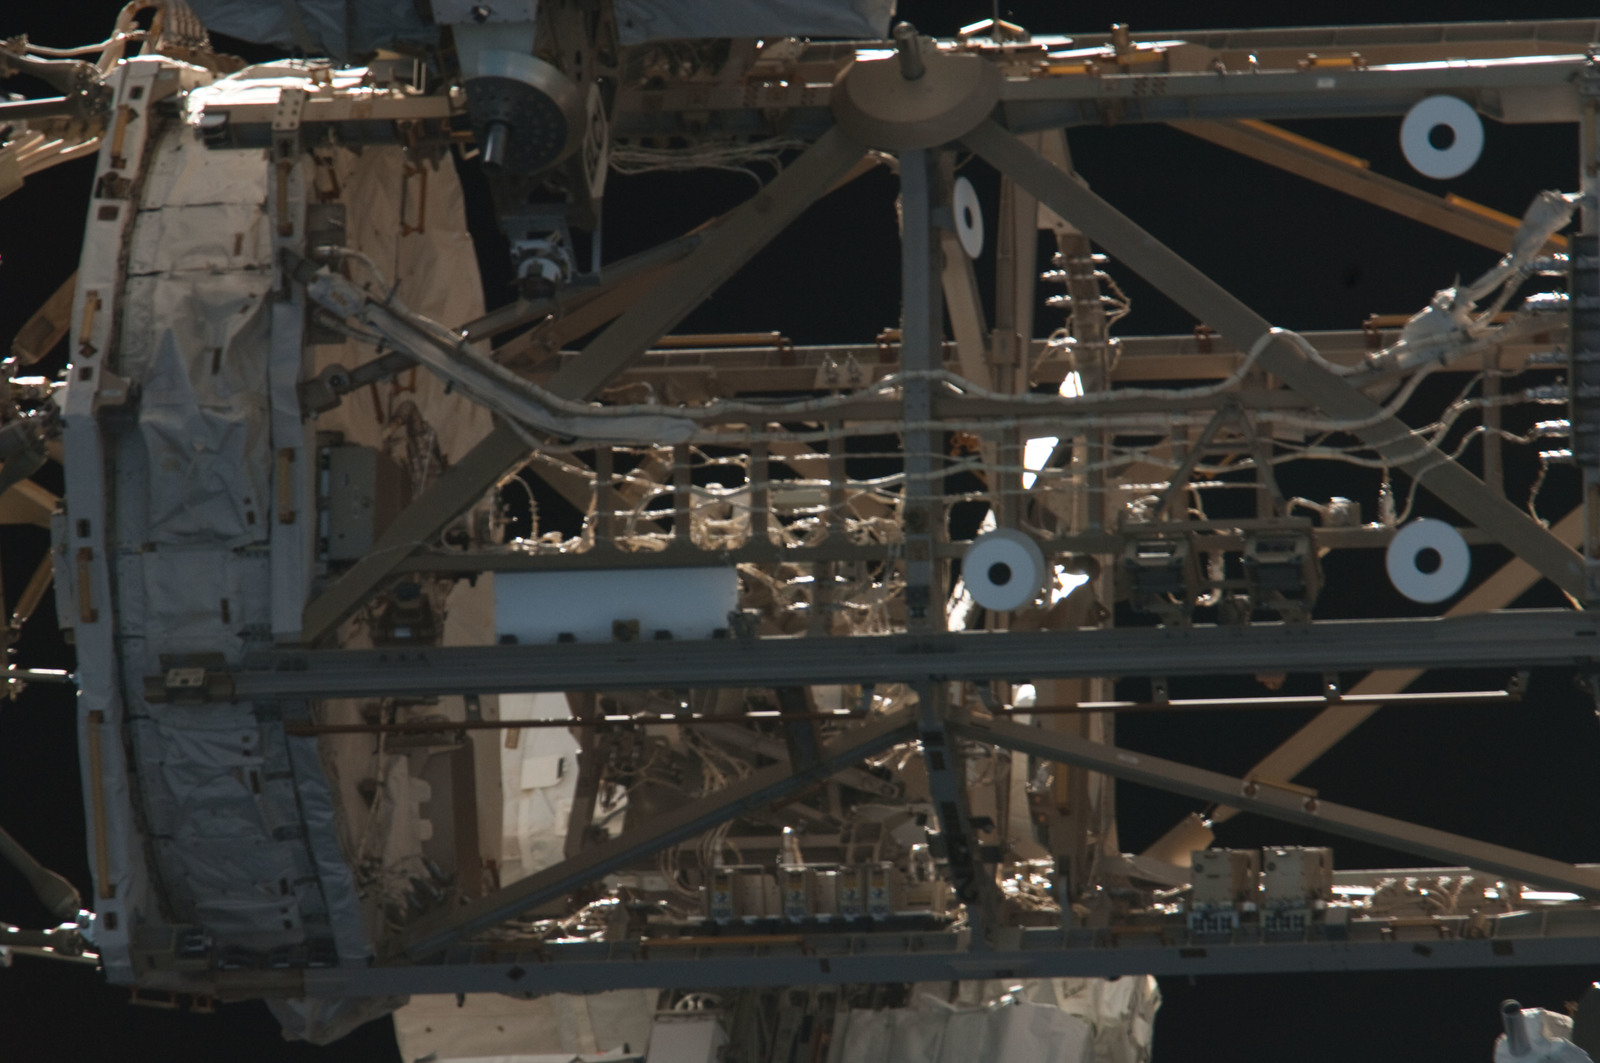 S134E011386 - STS-134 - Close-up view of Port Side Truss Segments